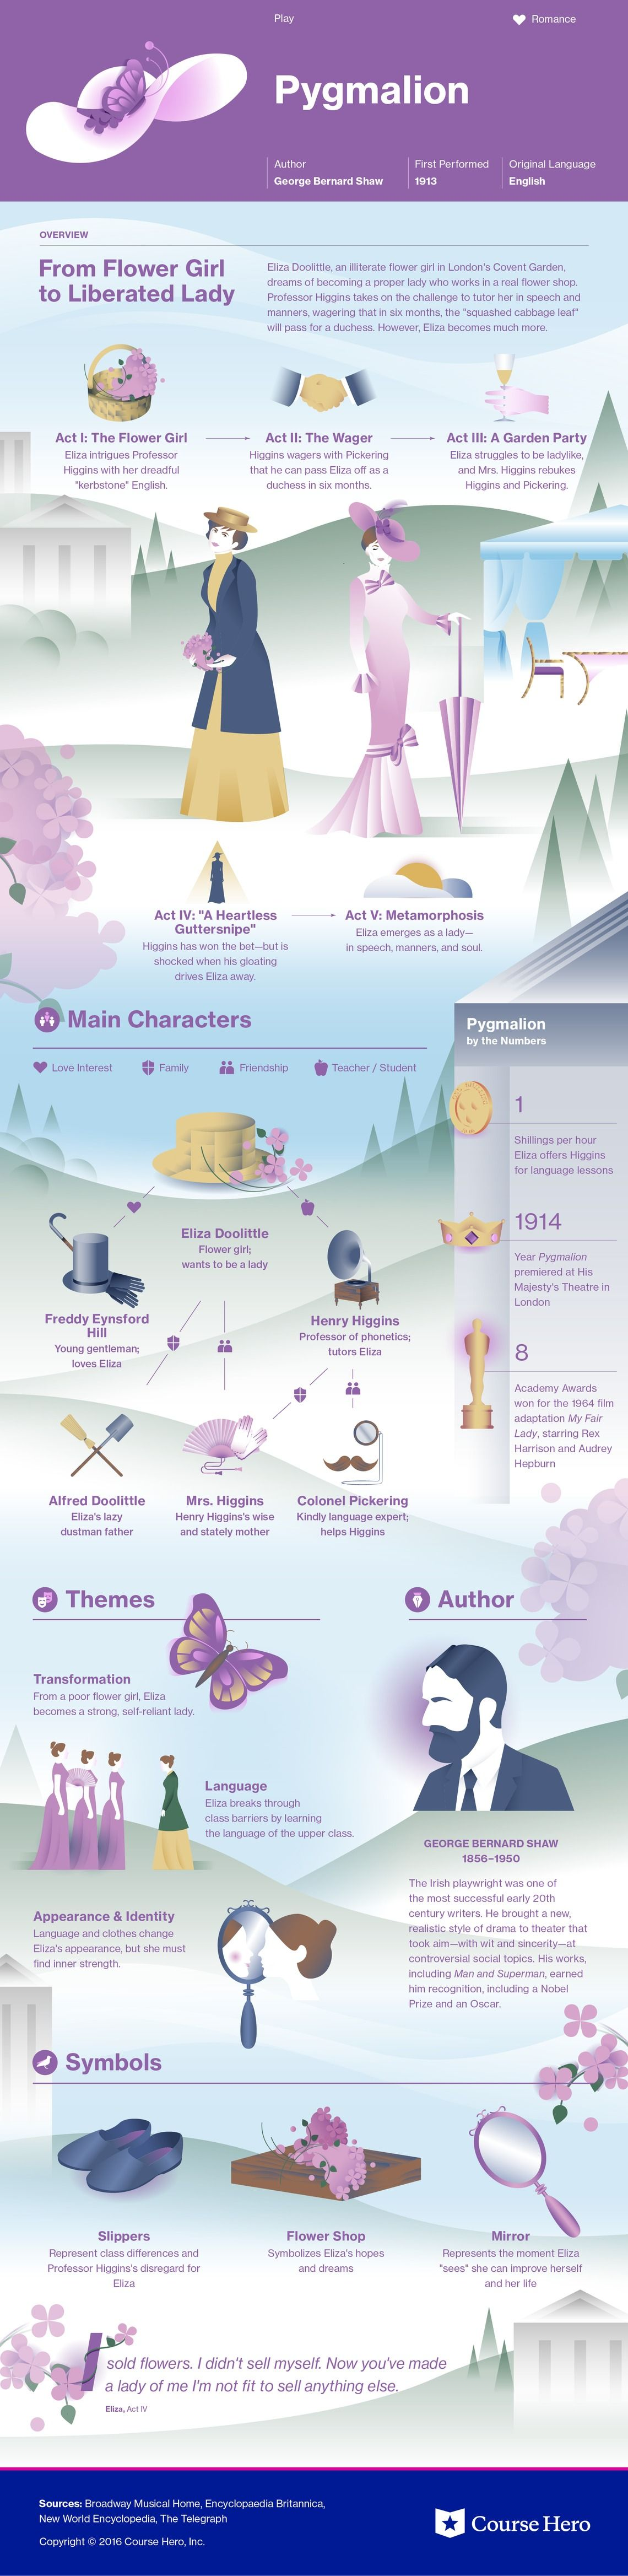 50 Drama Plays Ideas Play Right Book Infographic Drama Episode guide for the buzz on maggie: pinterest